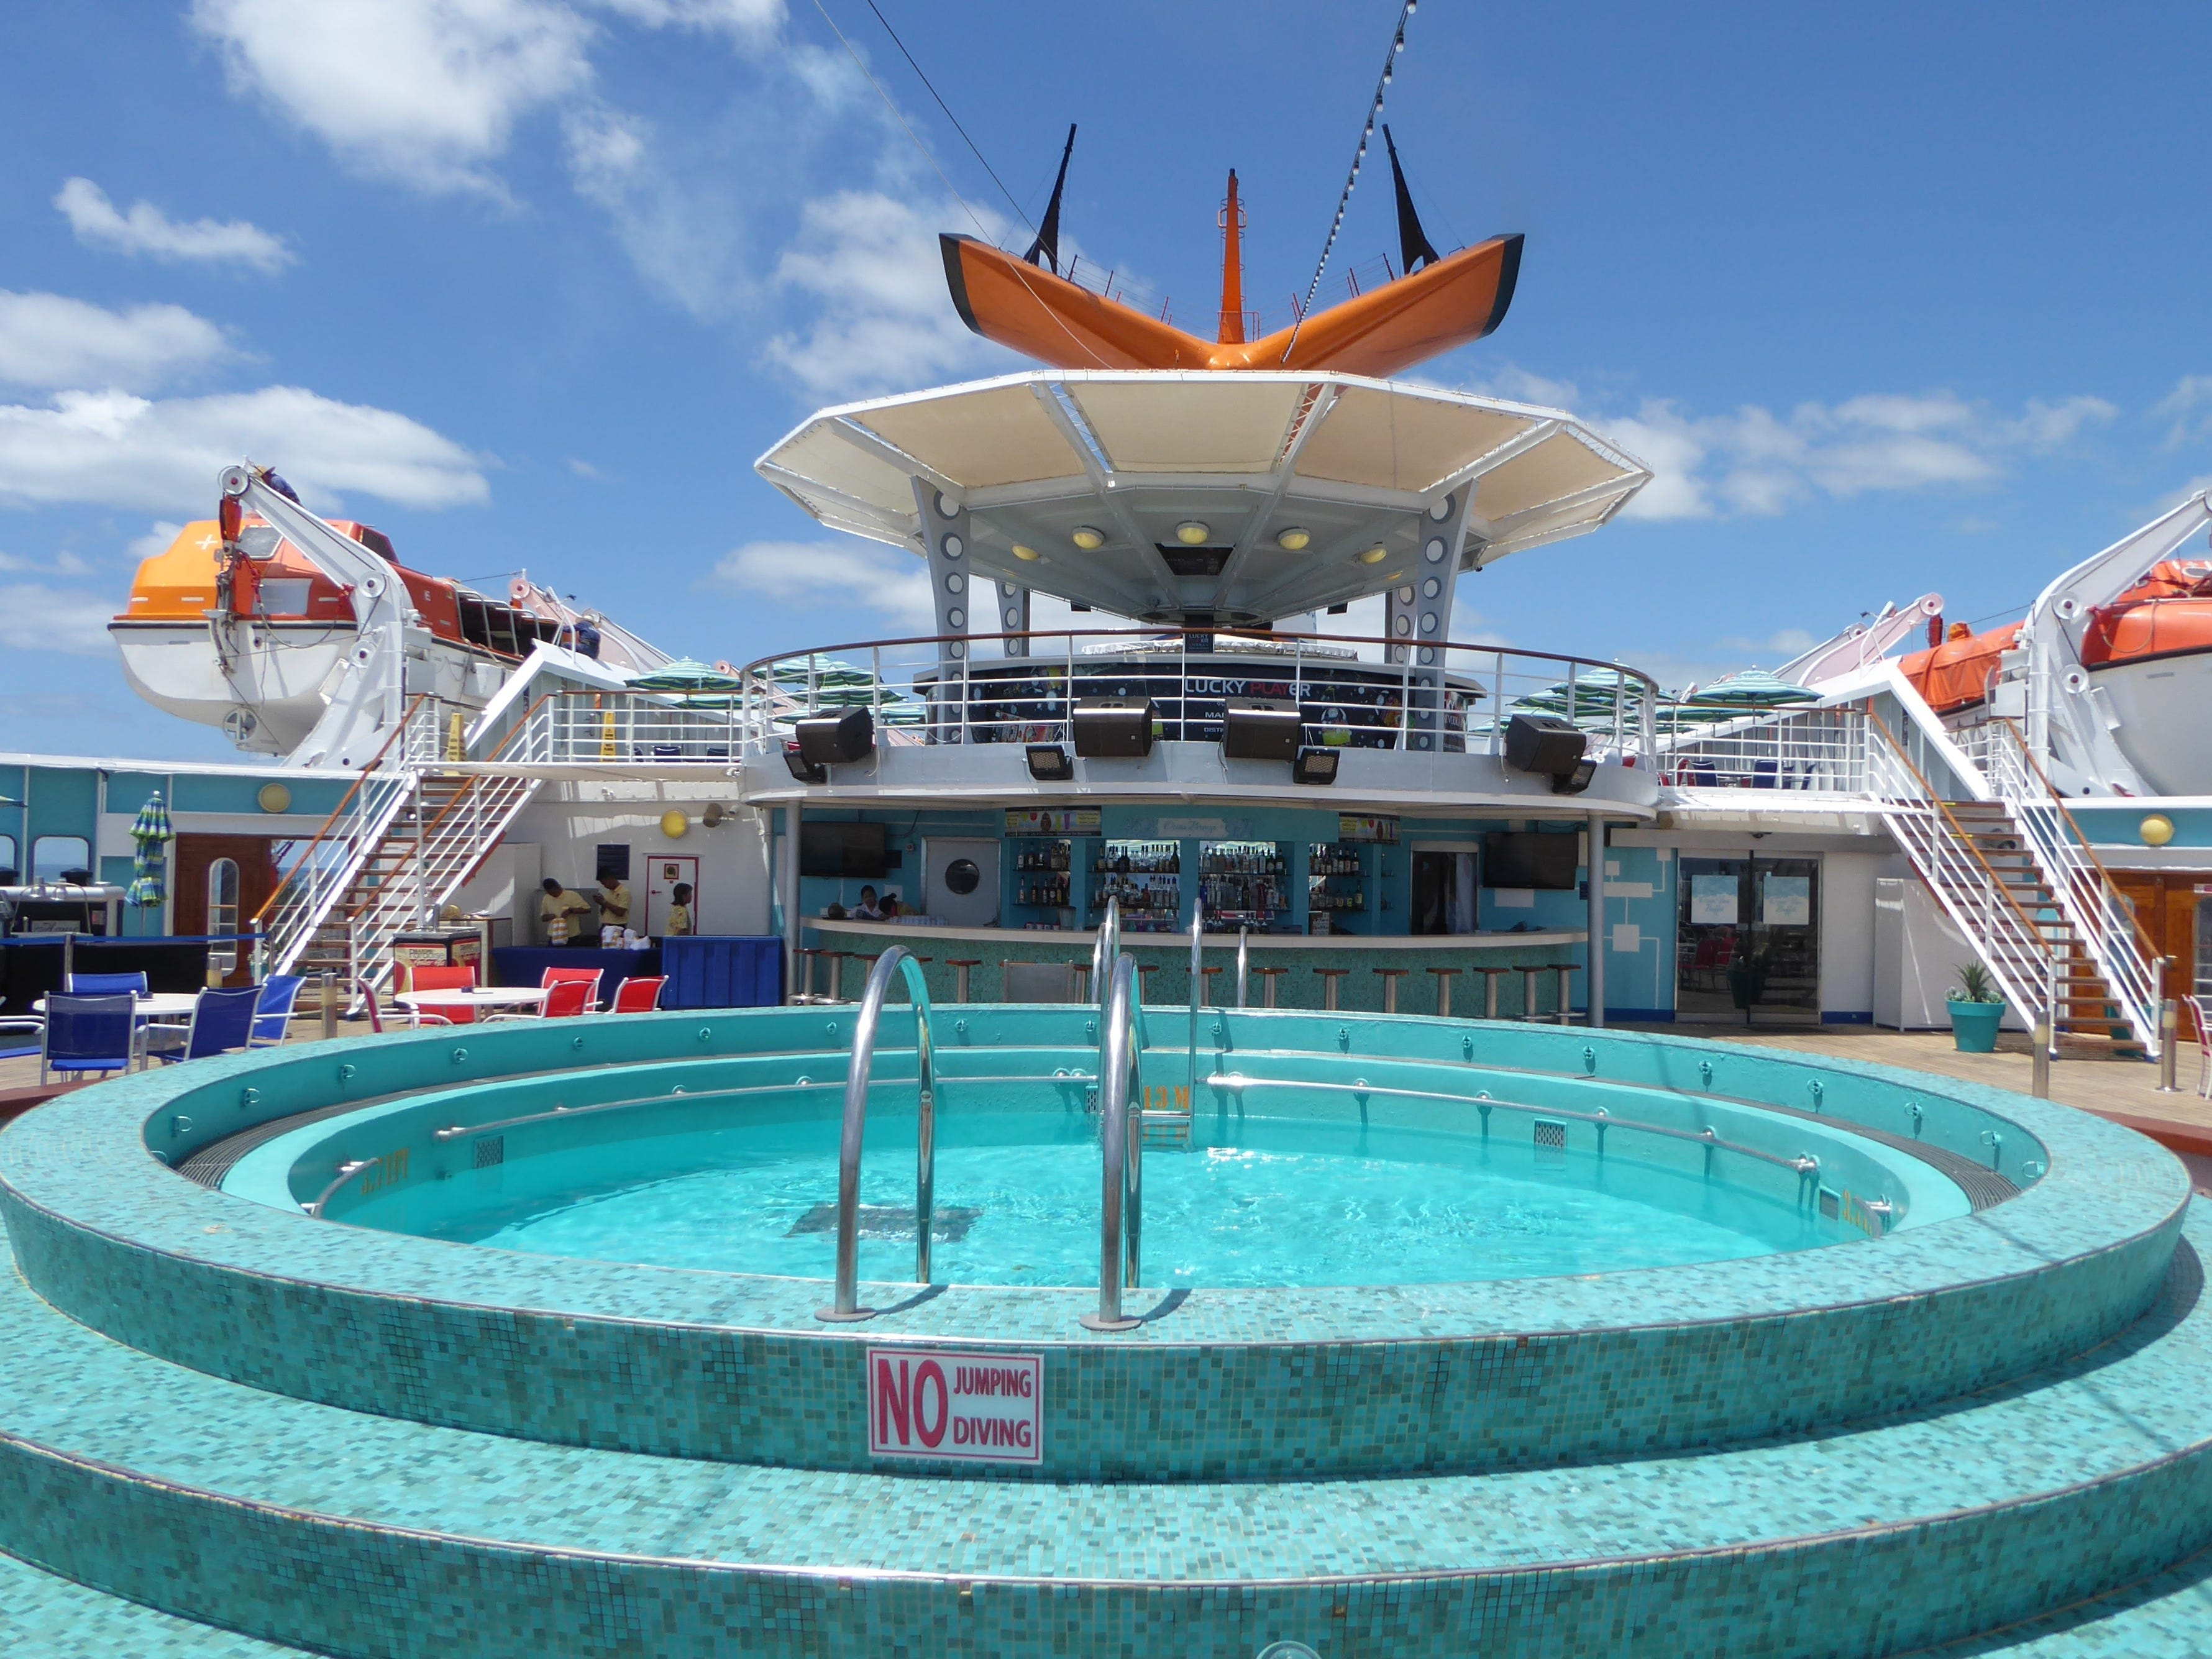 The aft portion of Luna Deck is also home to a wading pool, a pair of whirlpools and more sunning space.